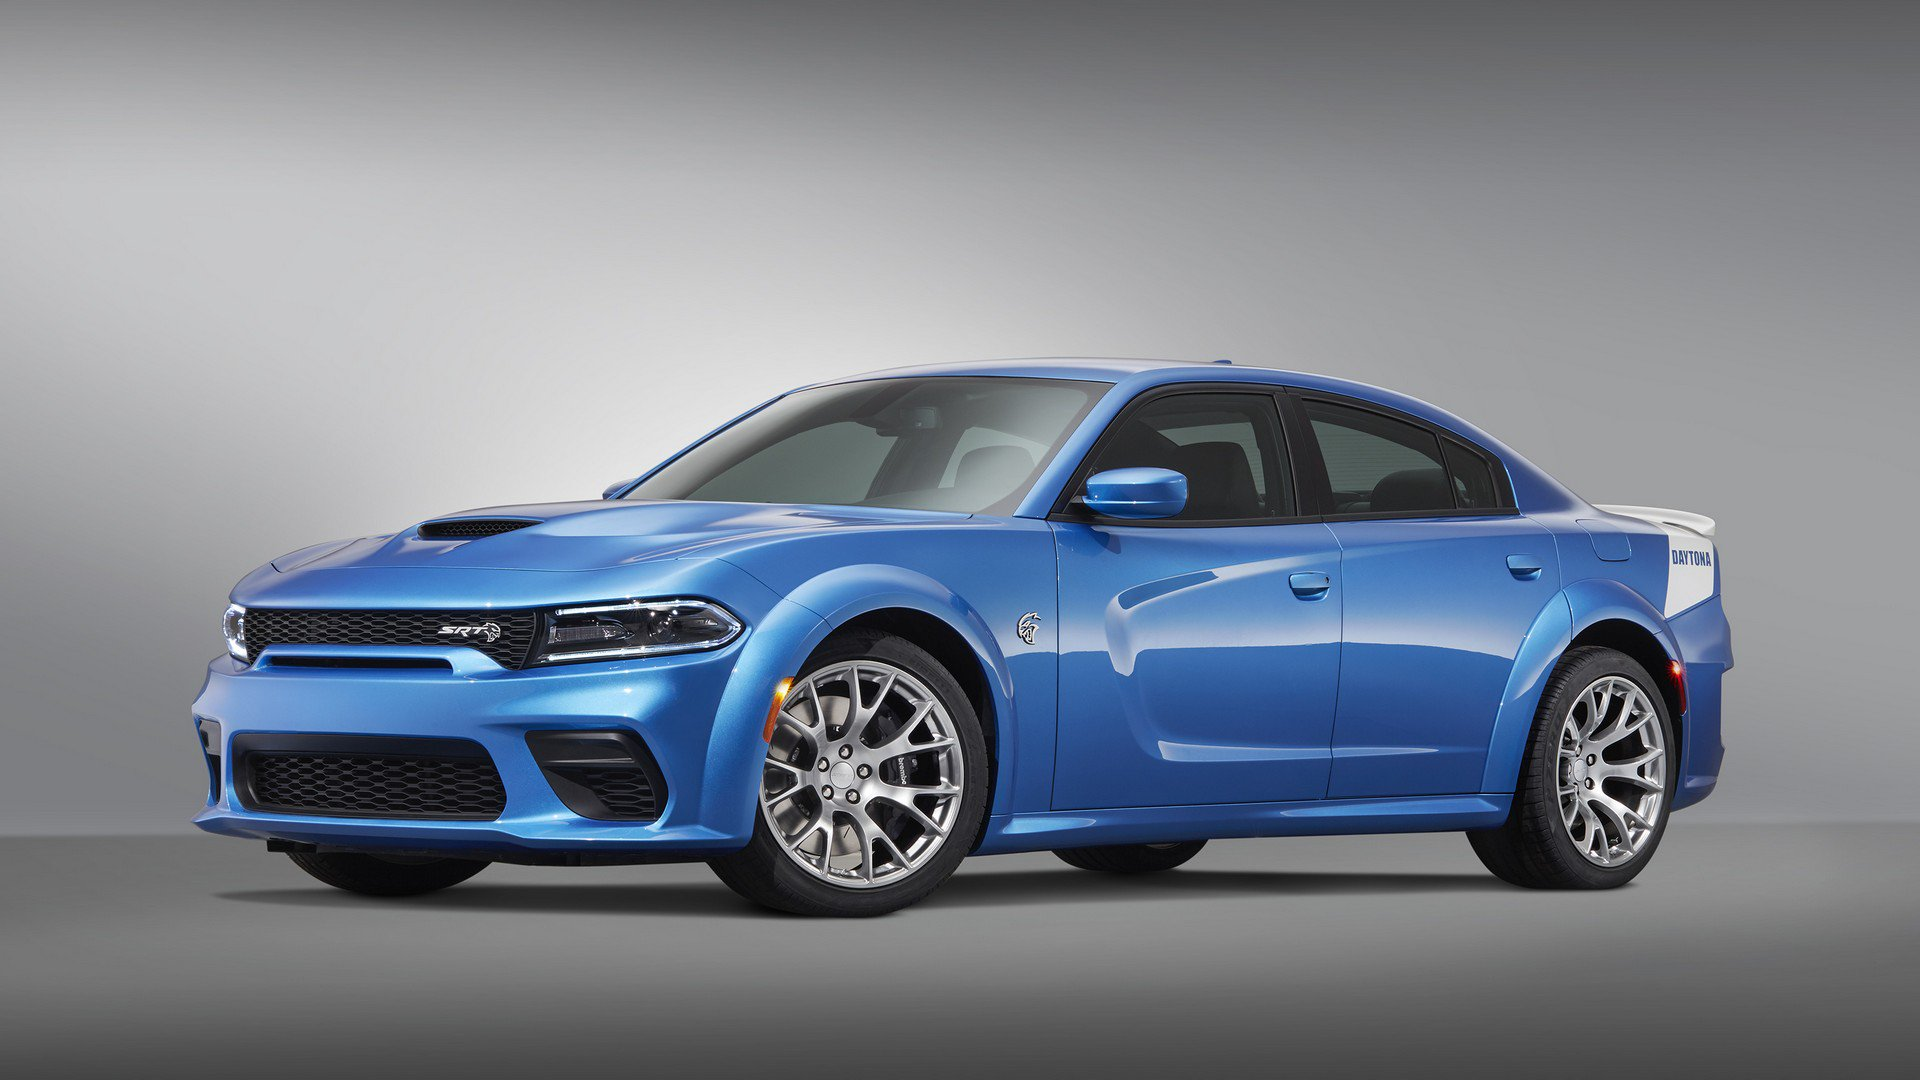 Dodge-Charger-SRT-Hellcat-Widebody-Daytona-50th-Anniversary-Edition-1